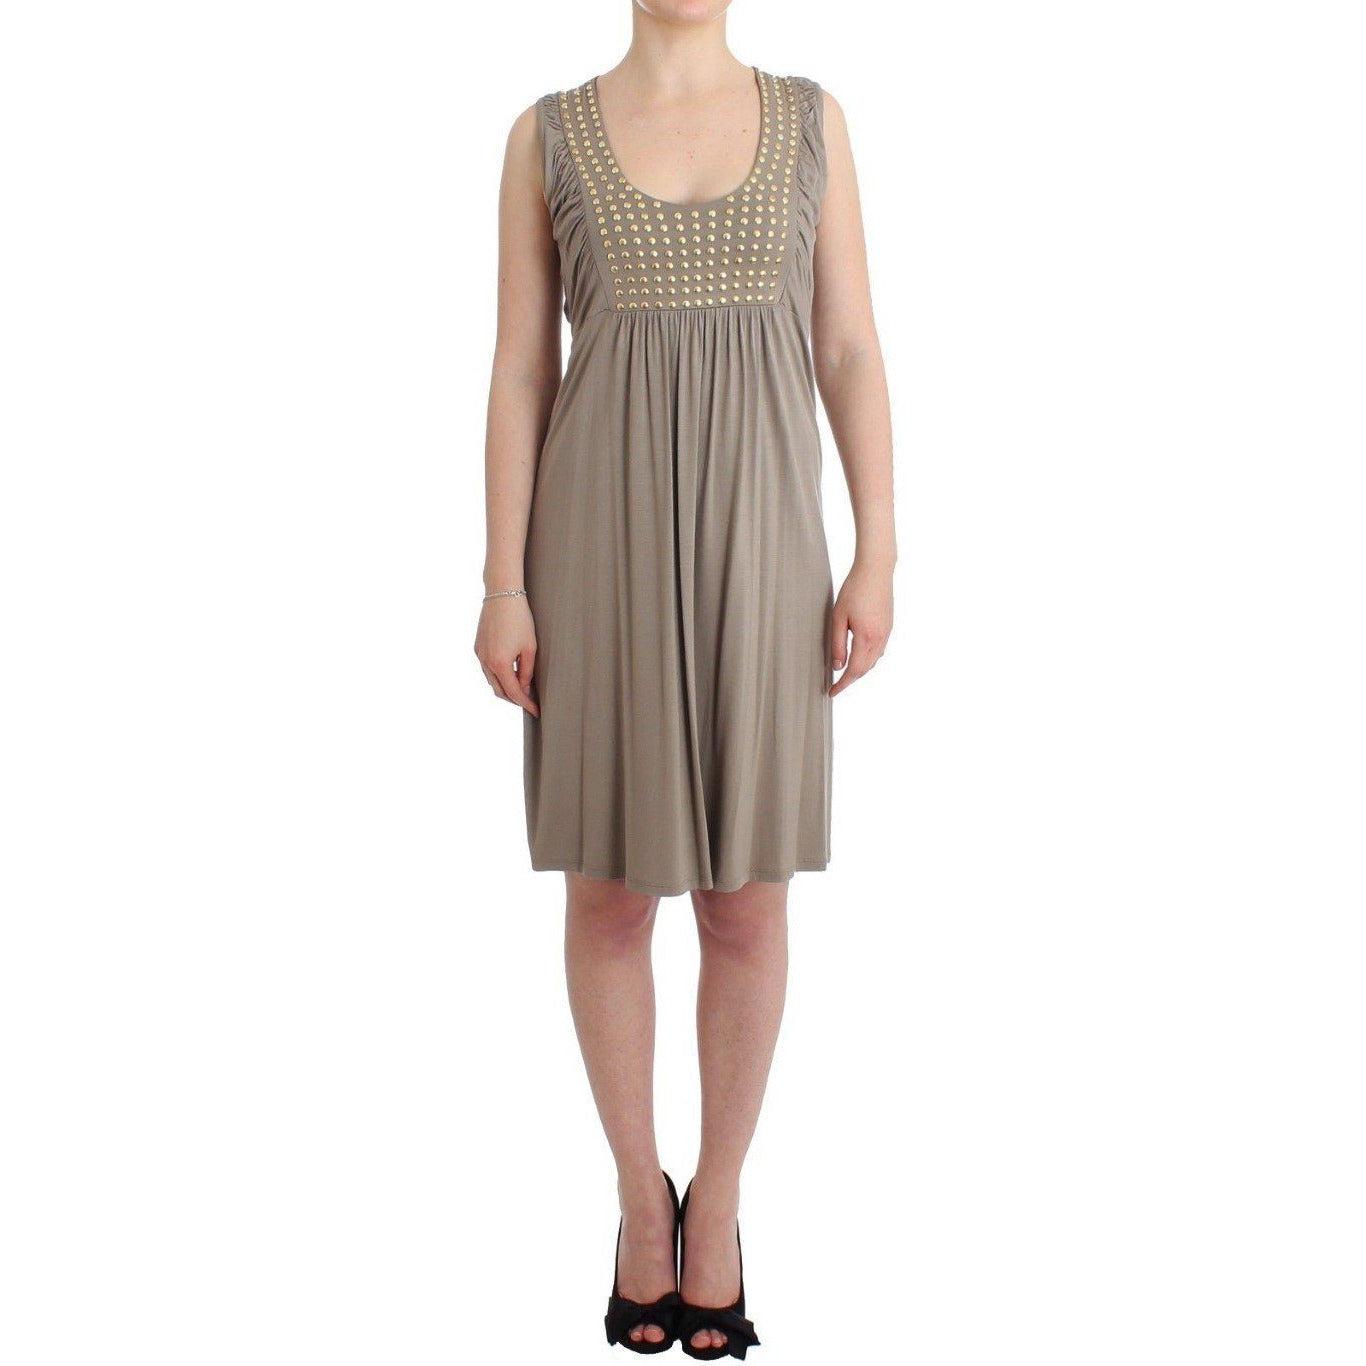 Khaki studded sheath dress Roccobarocco